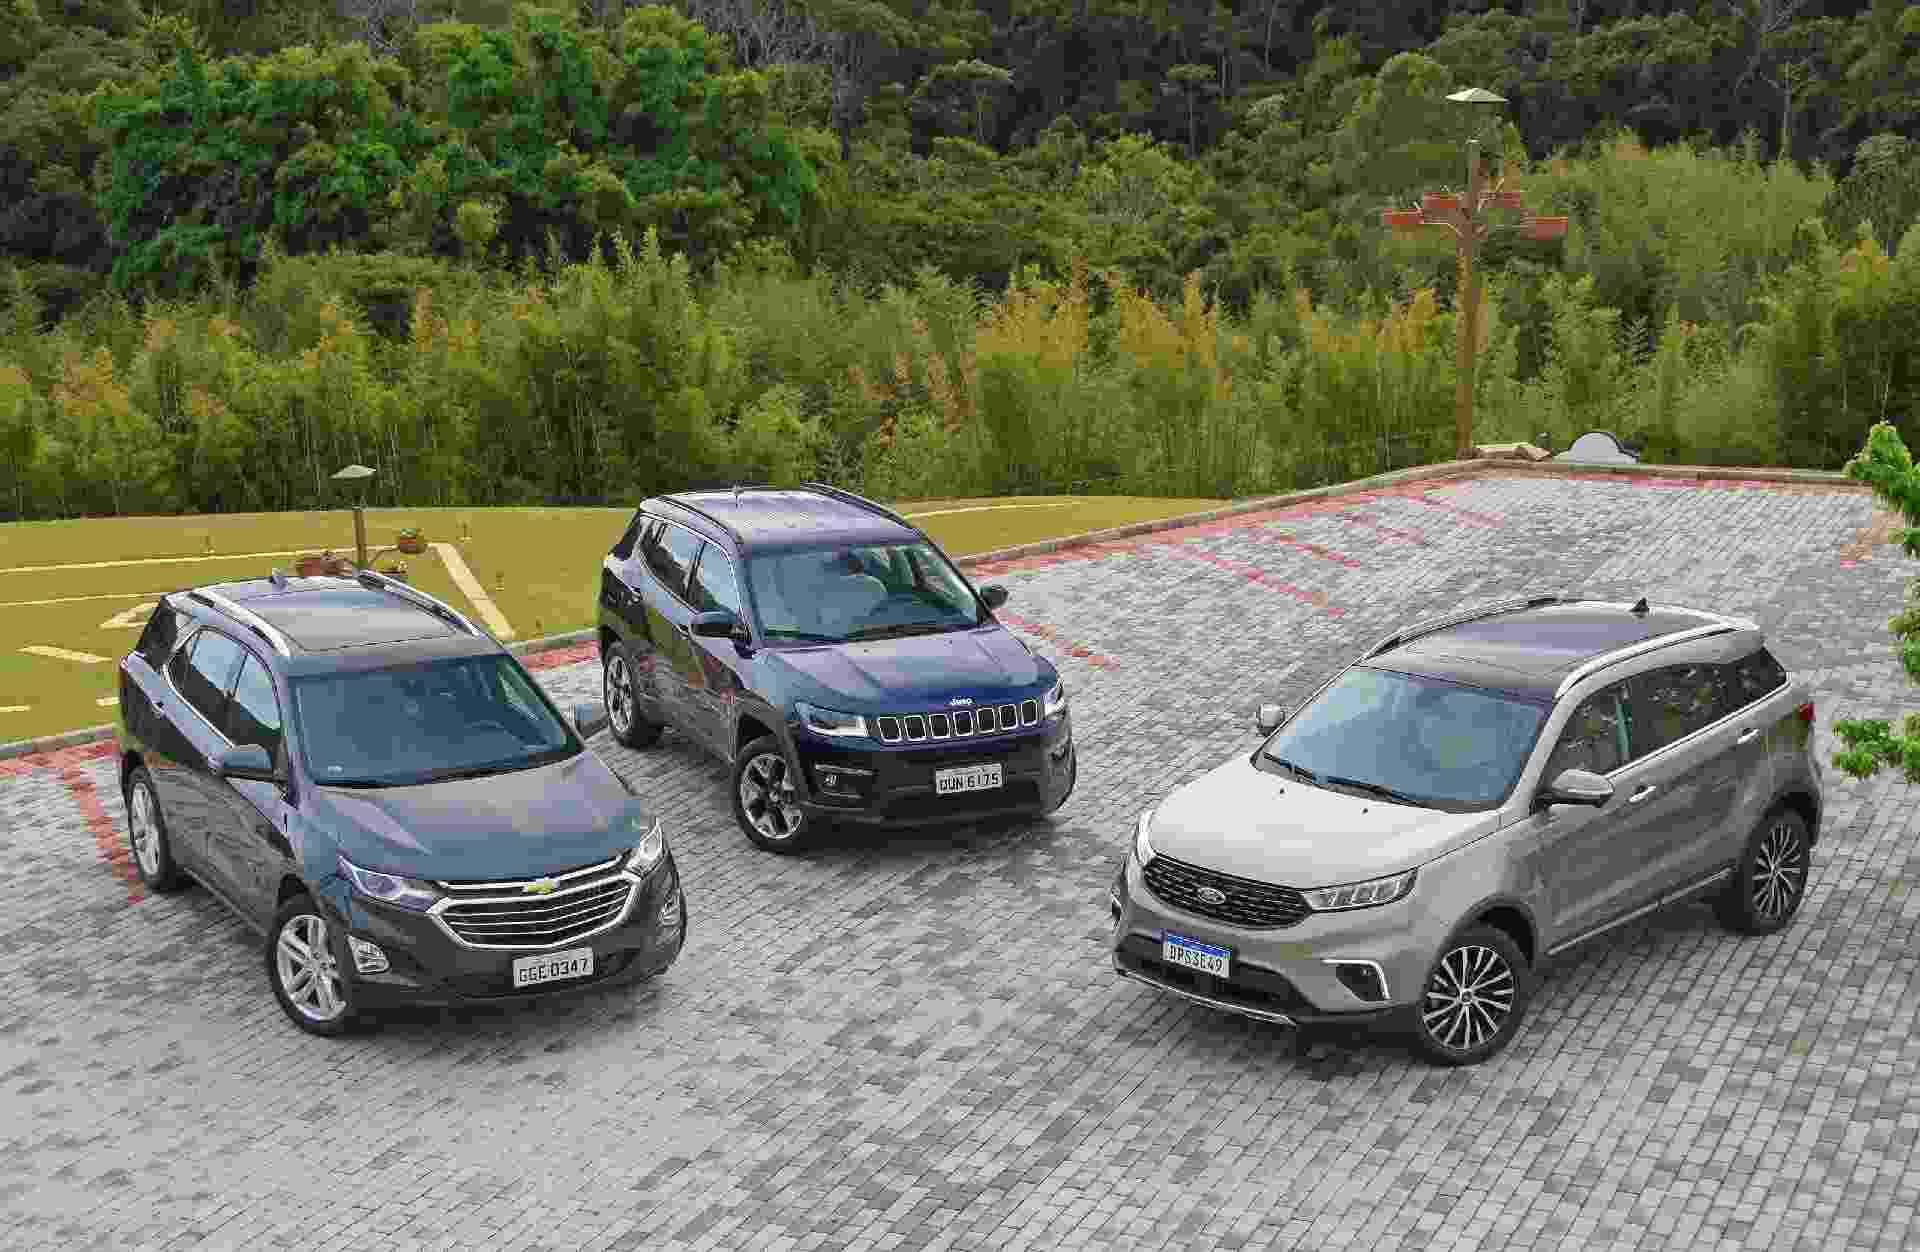 Ford Territory x Jeep Compass x Chevrolet Equinox - Murilo Góes/UOL